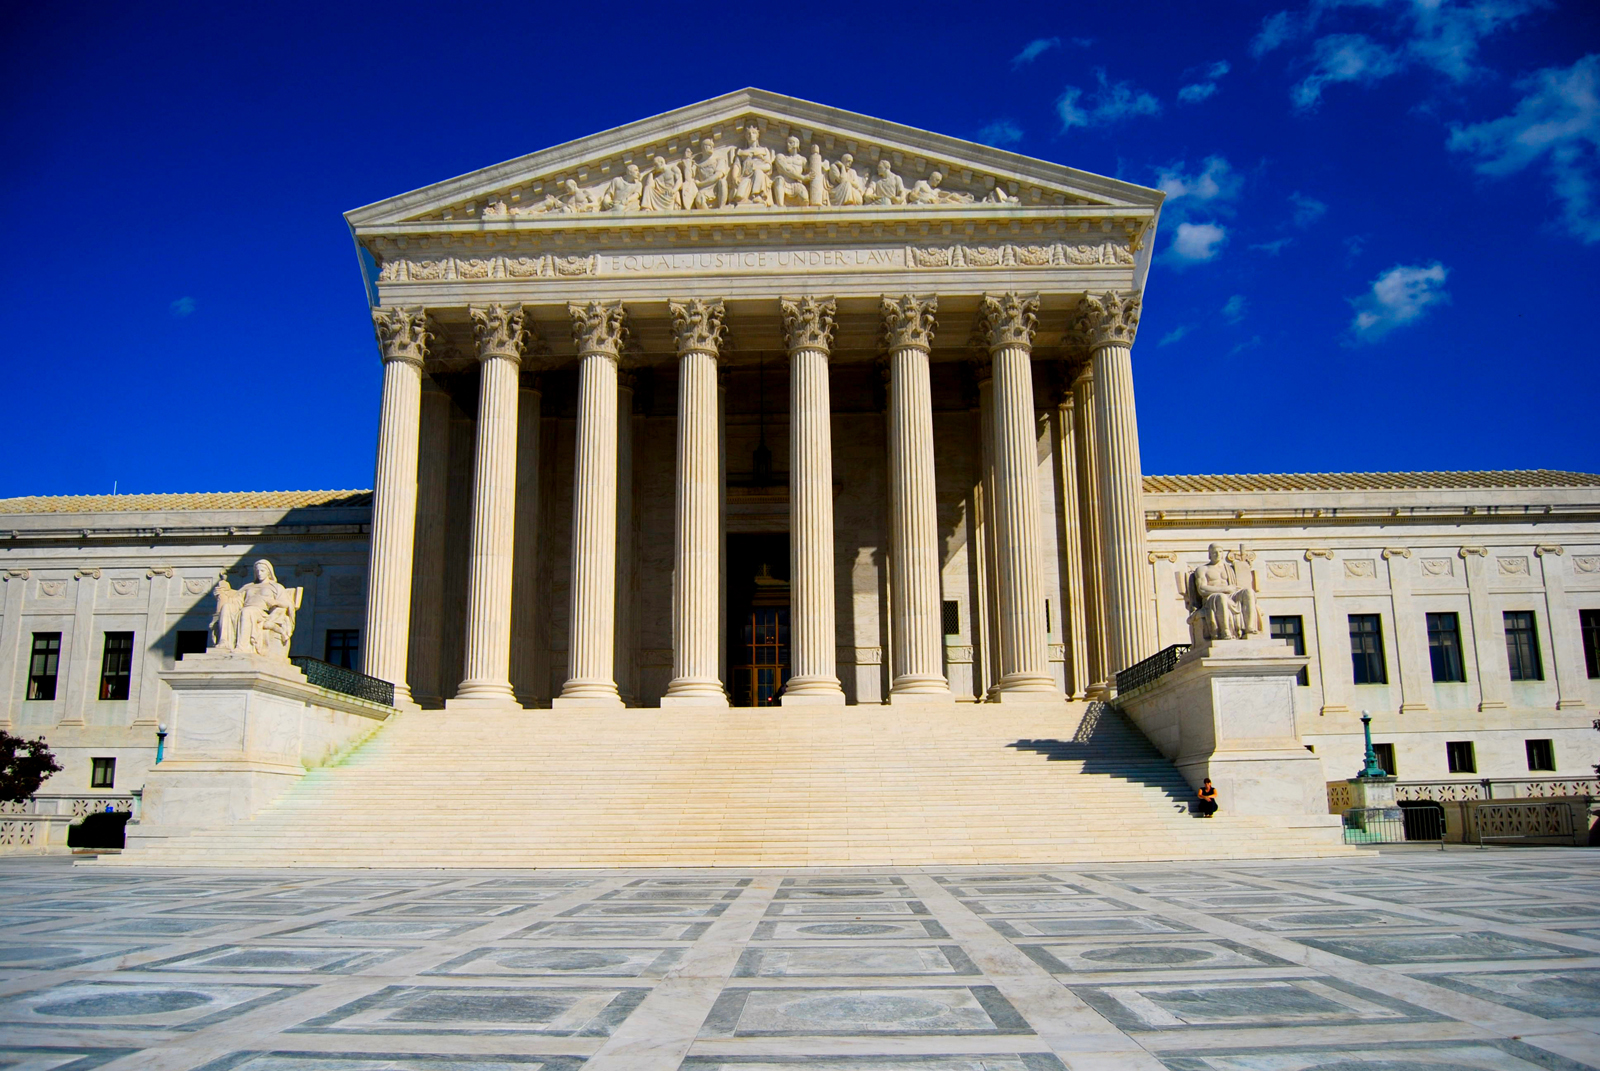 The Supreme Court of the United States (Photo Credit: David Ortez)